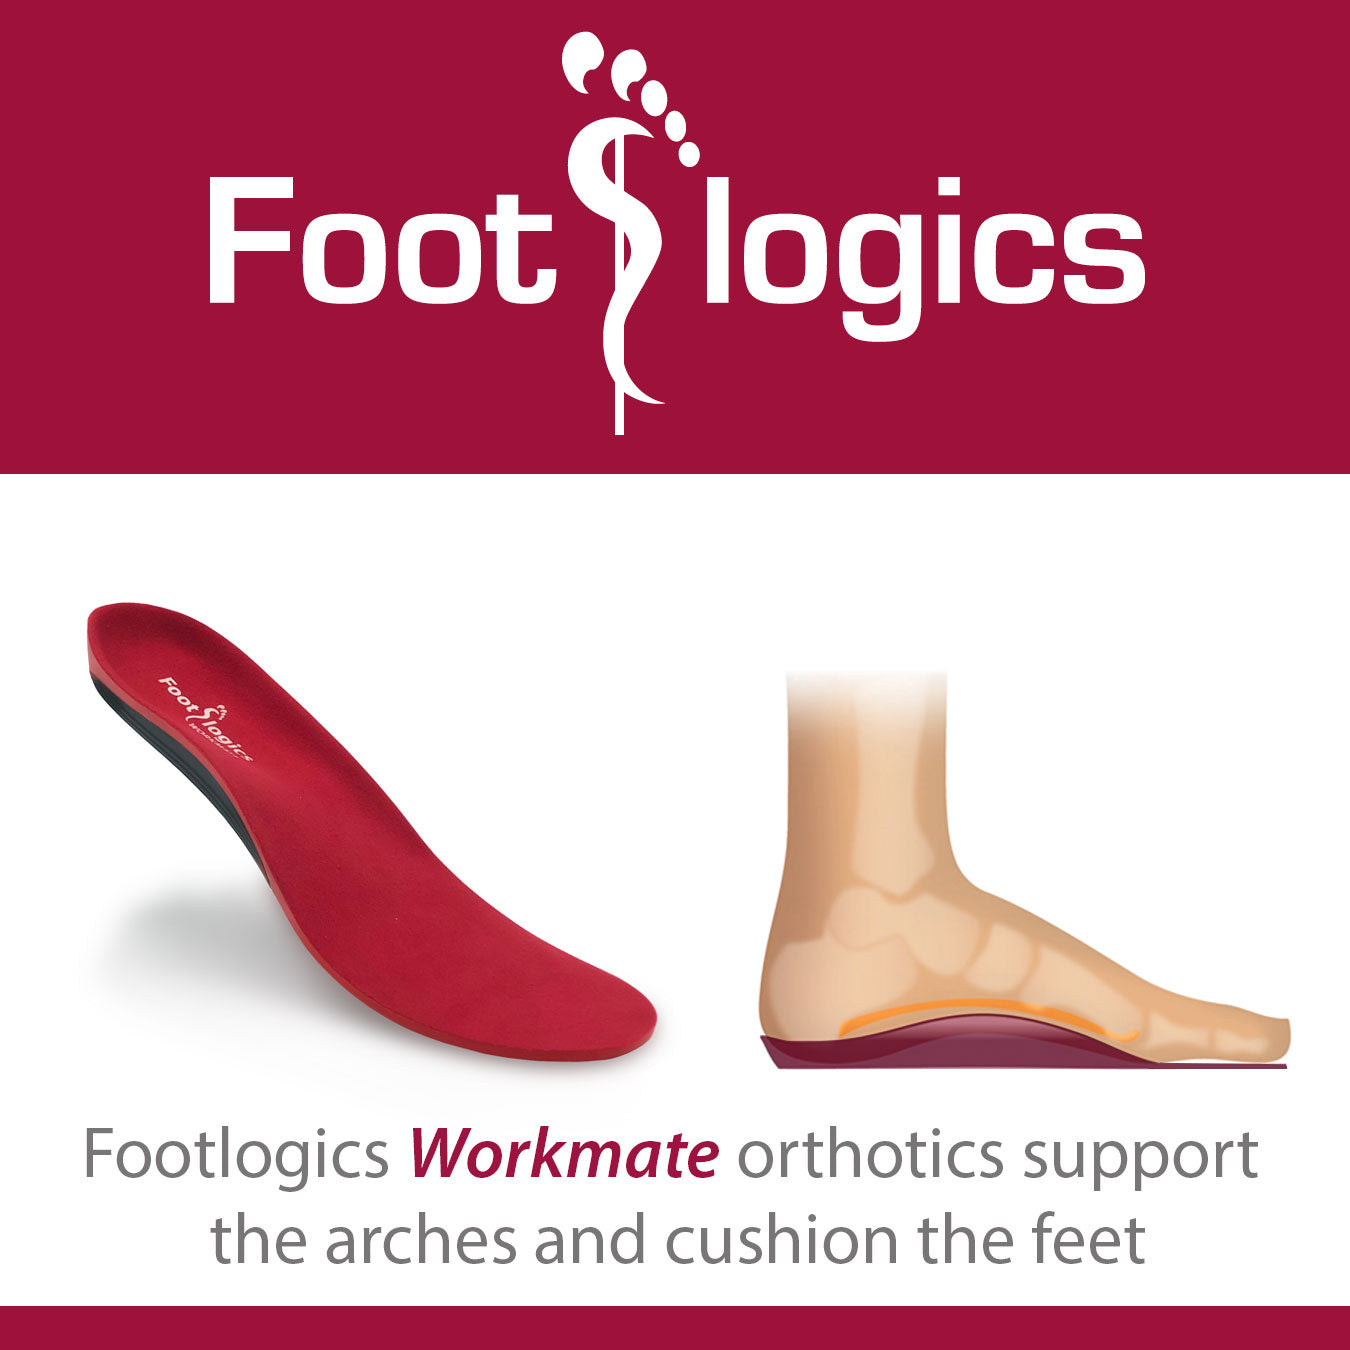 Footlogics Workmate